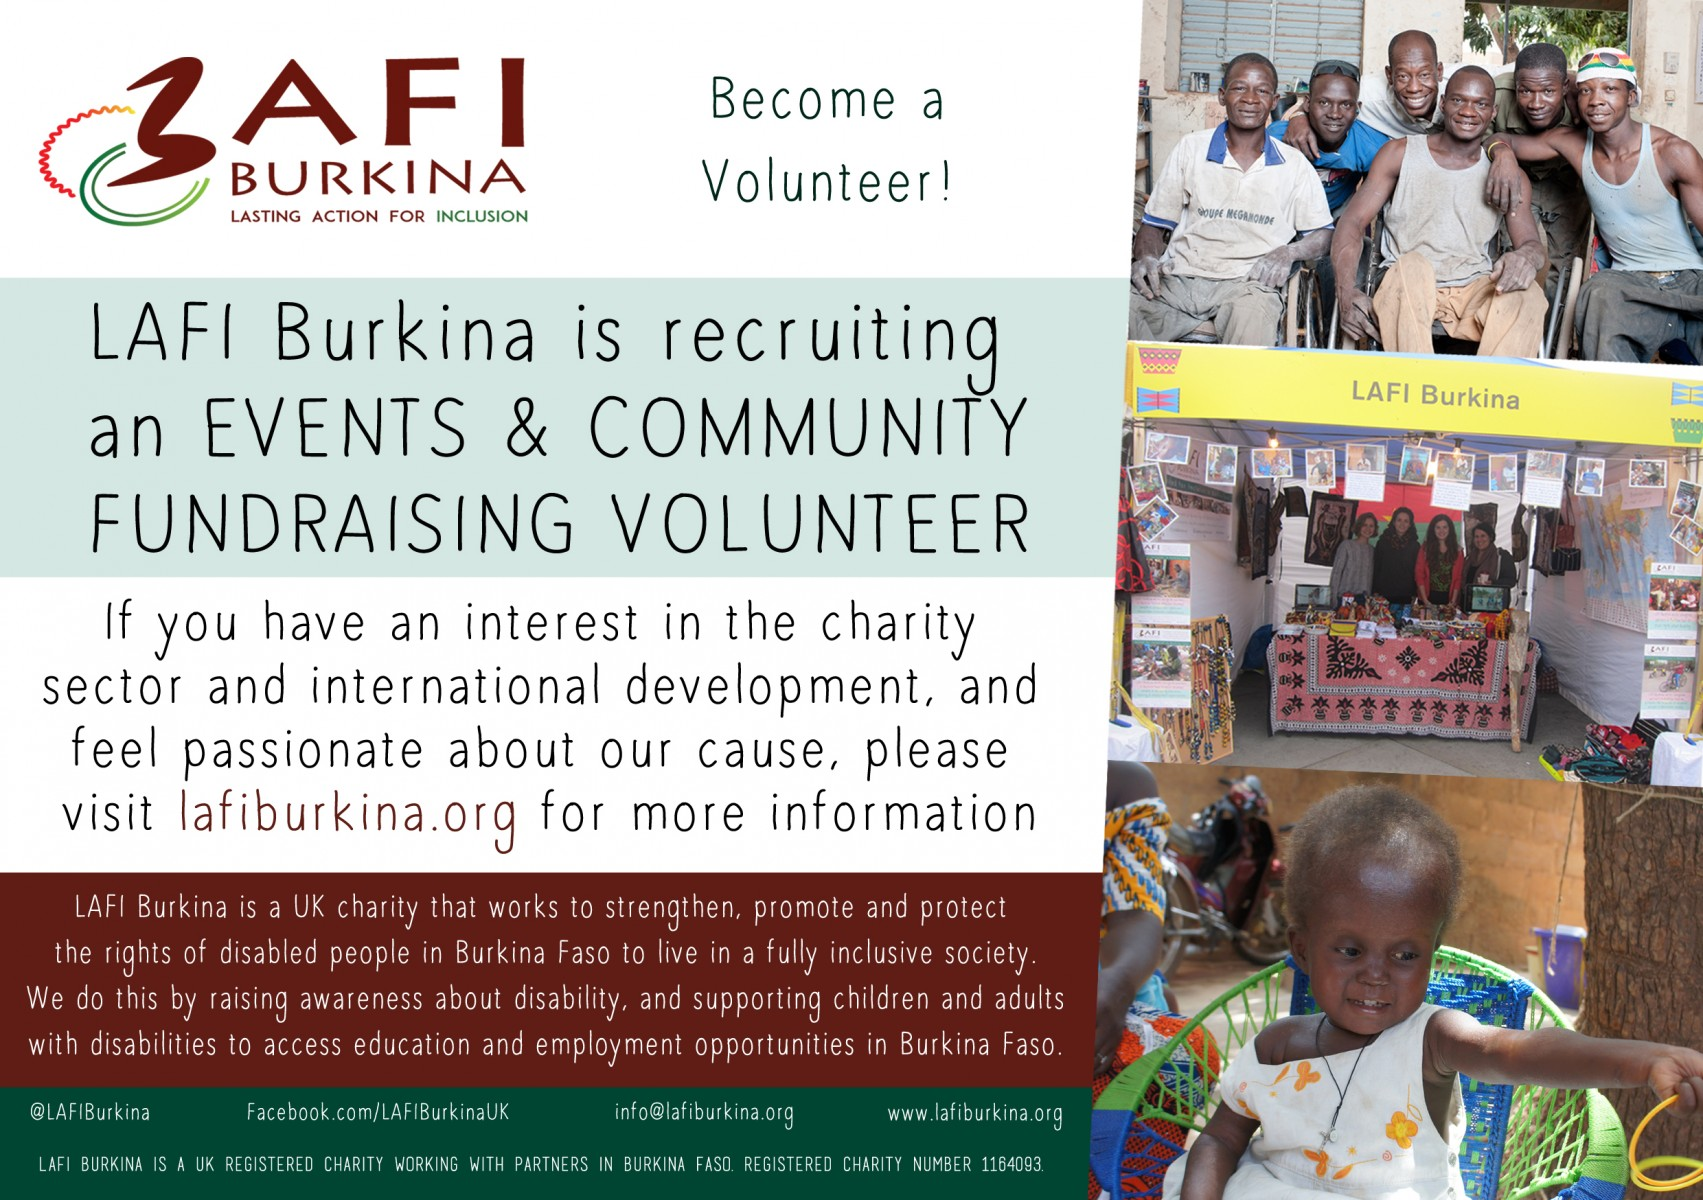 Volunteer Recruitment – Events & Community Fundraising Volunteer